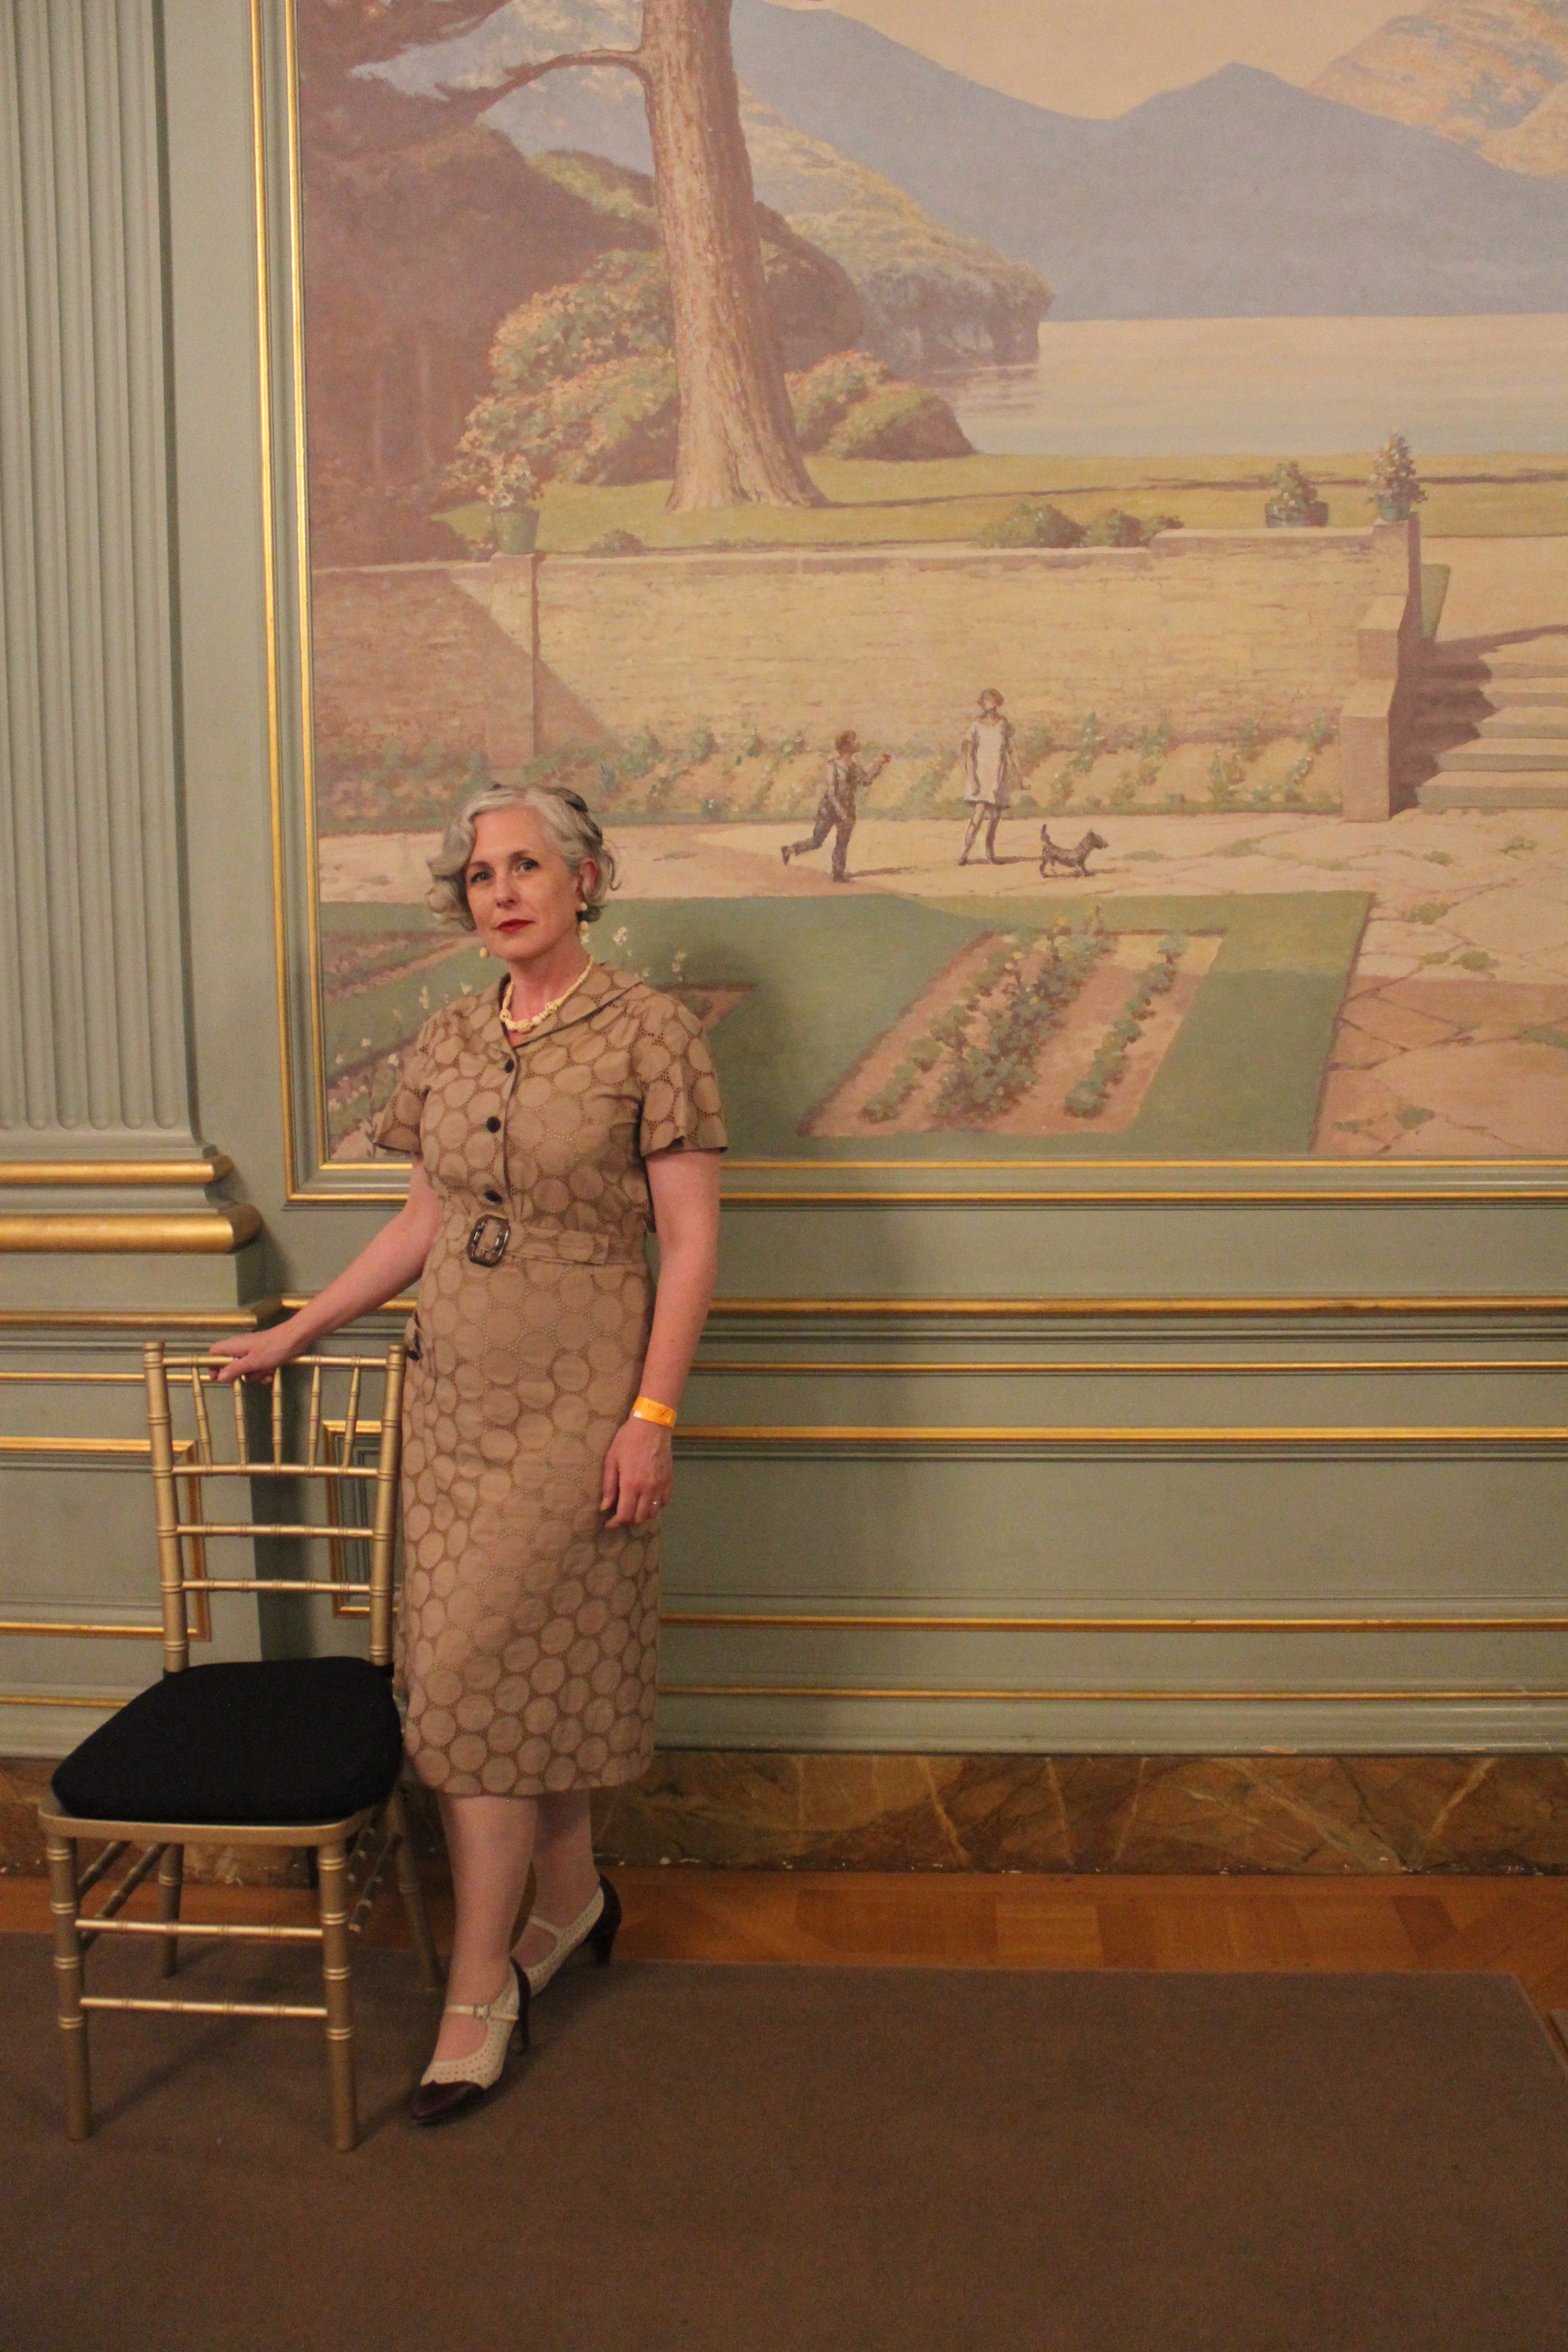 Here I am in the Ballroom, wearing a dress I made from a vintage 1930's pattern. Don't I fit right in?